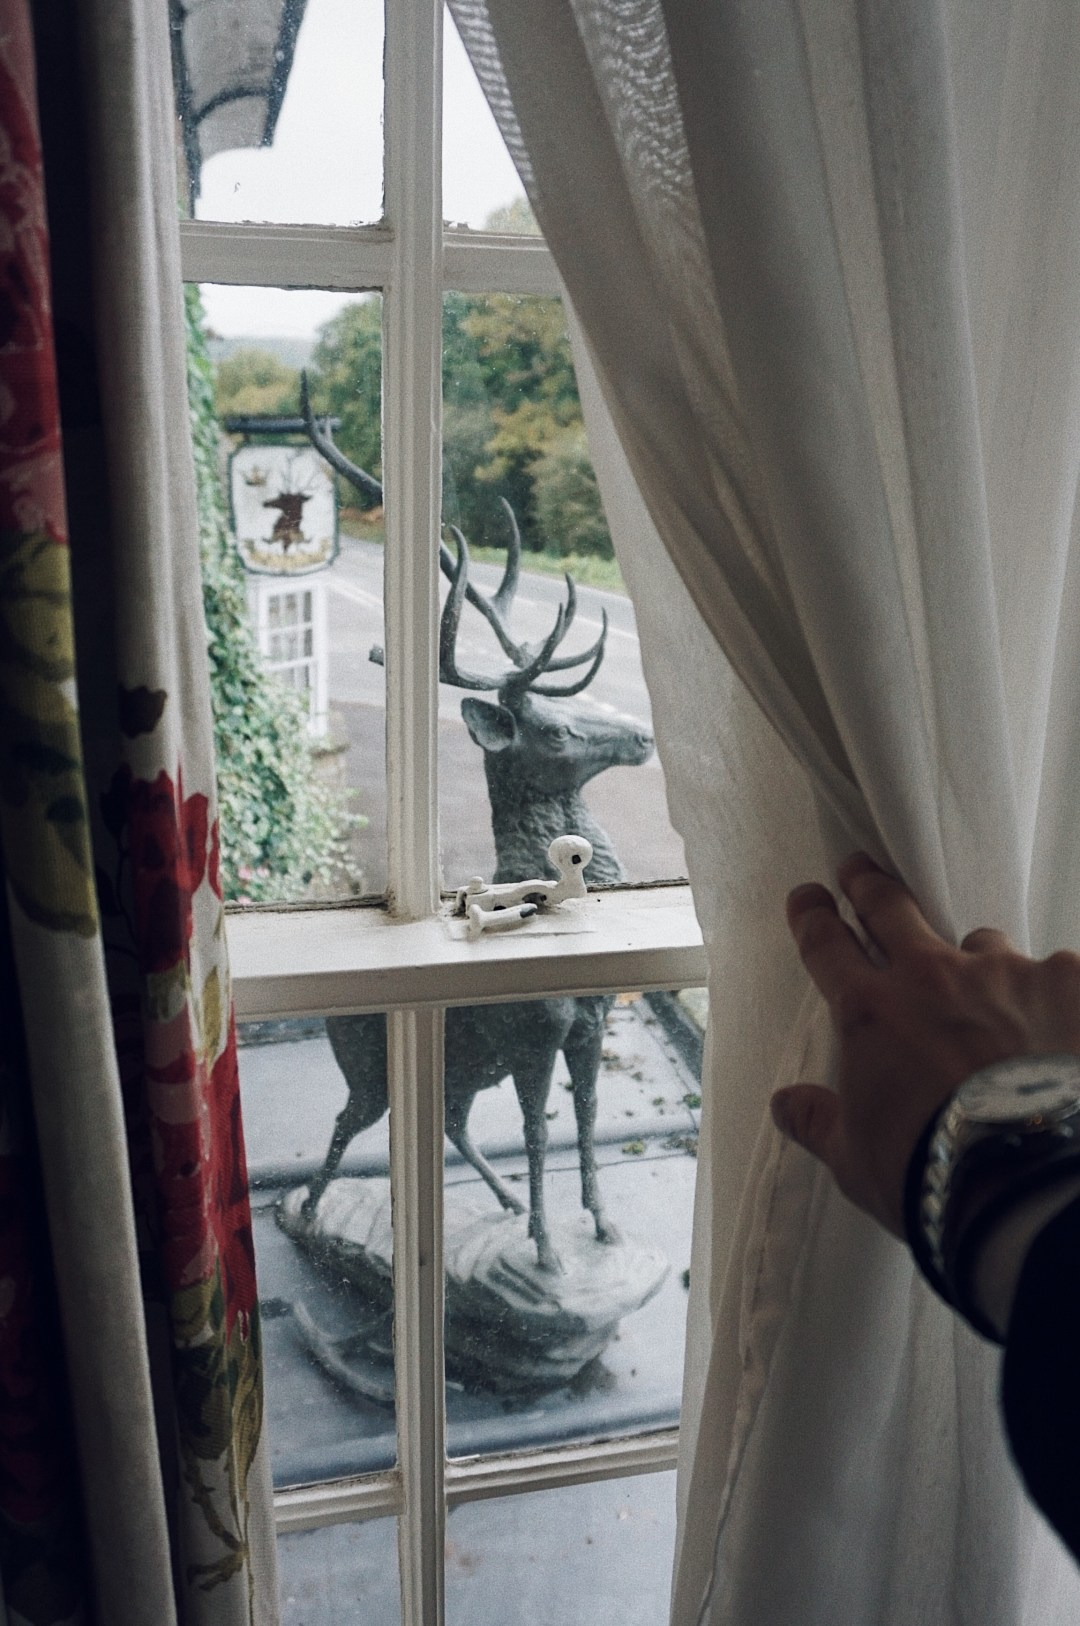 Reindeer statue. Master 4 Poster Suite at The Speech House Hotel. Forest of Dean. Blog by Skirmantas Petraitis.